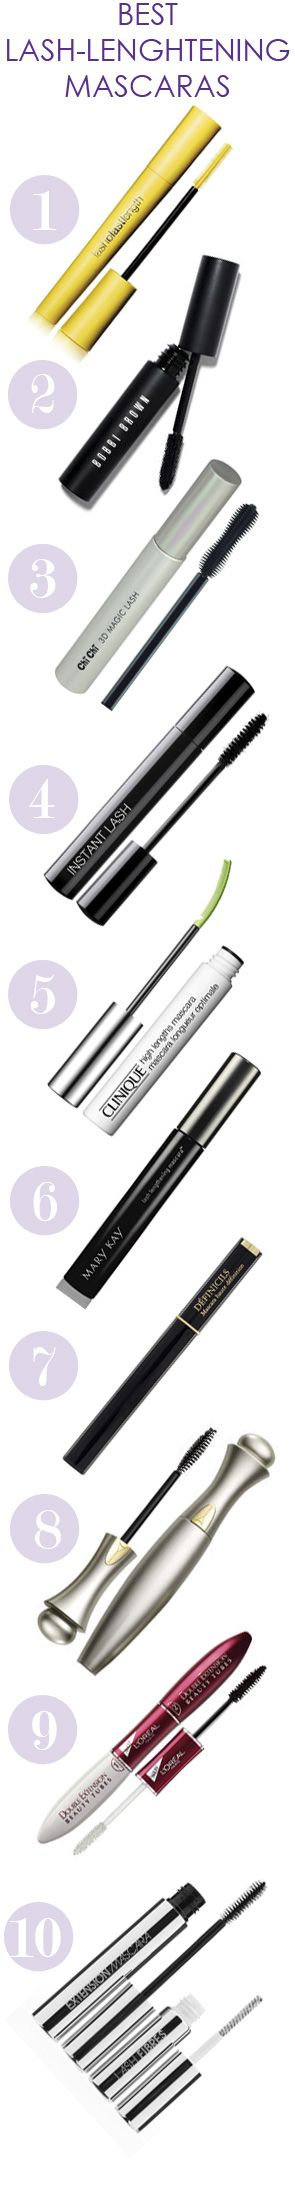 10 of the best lengthening mascaras